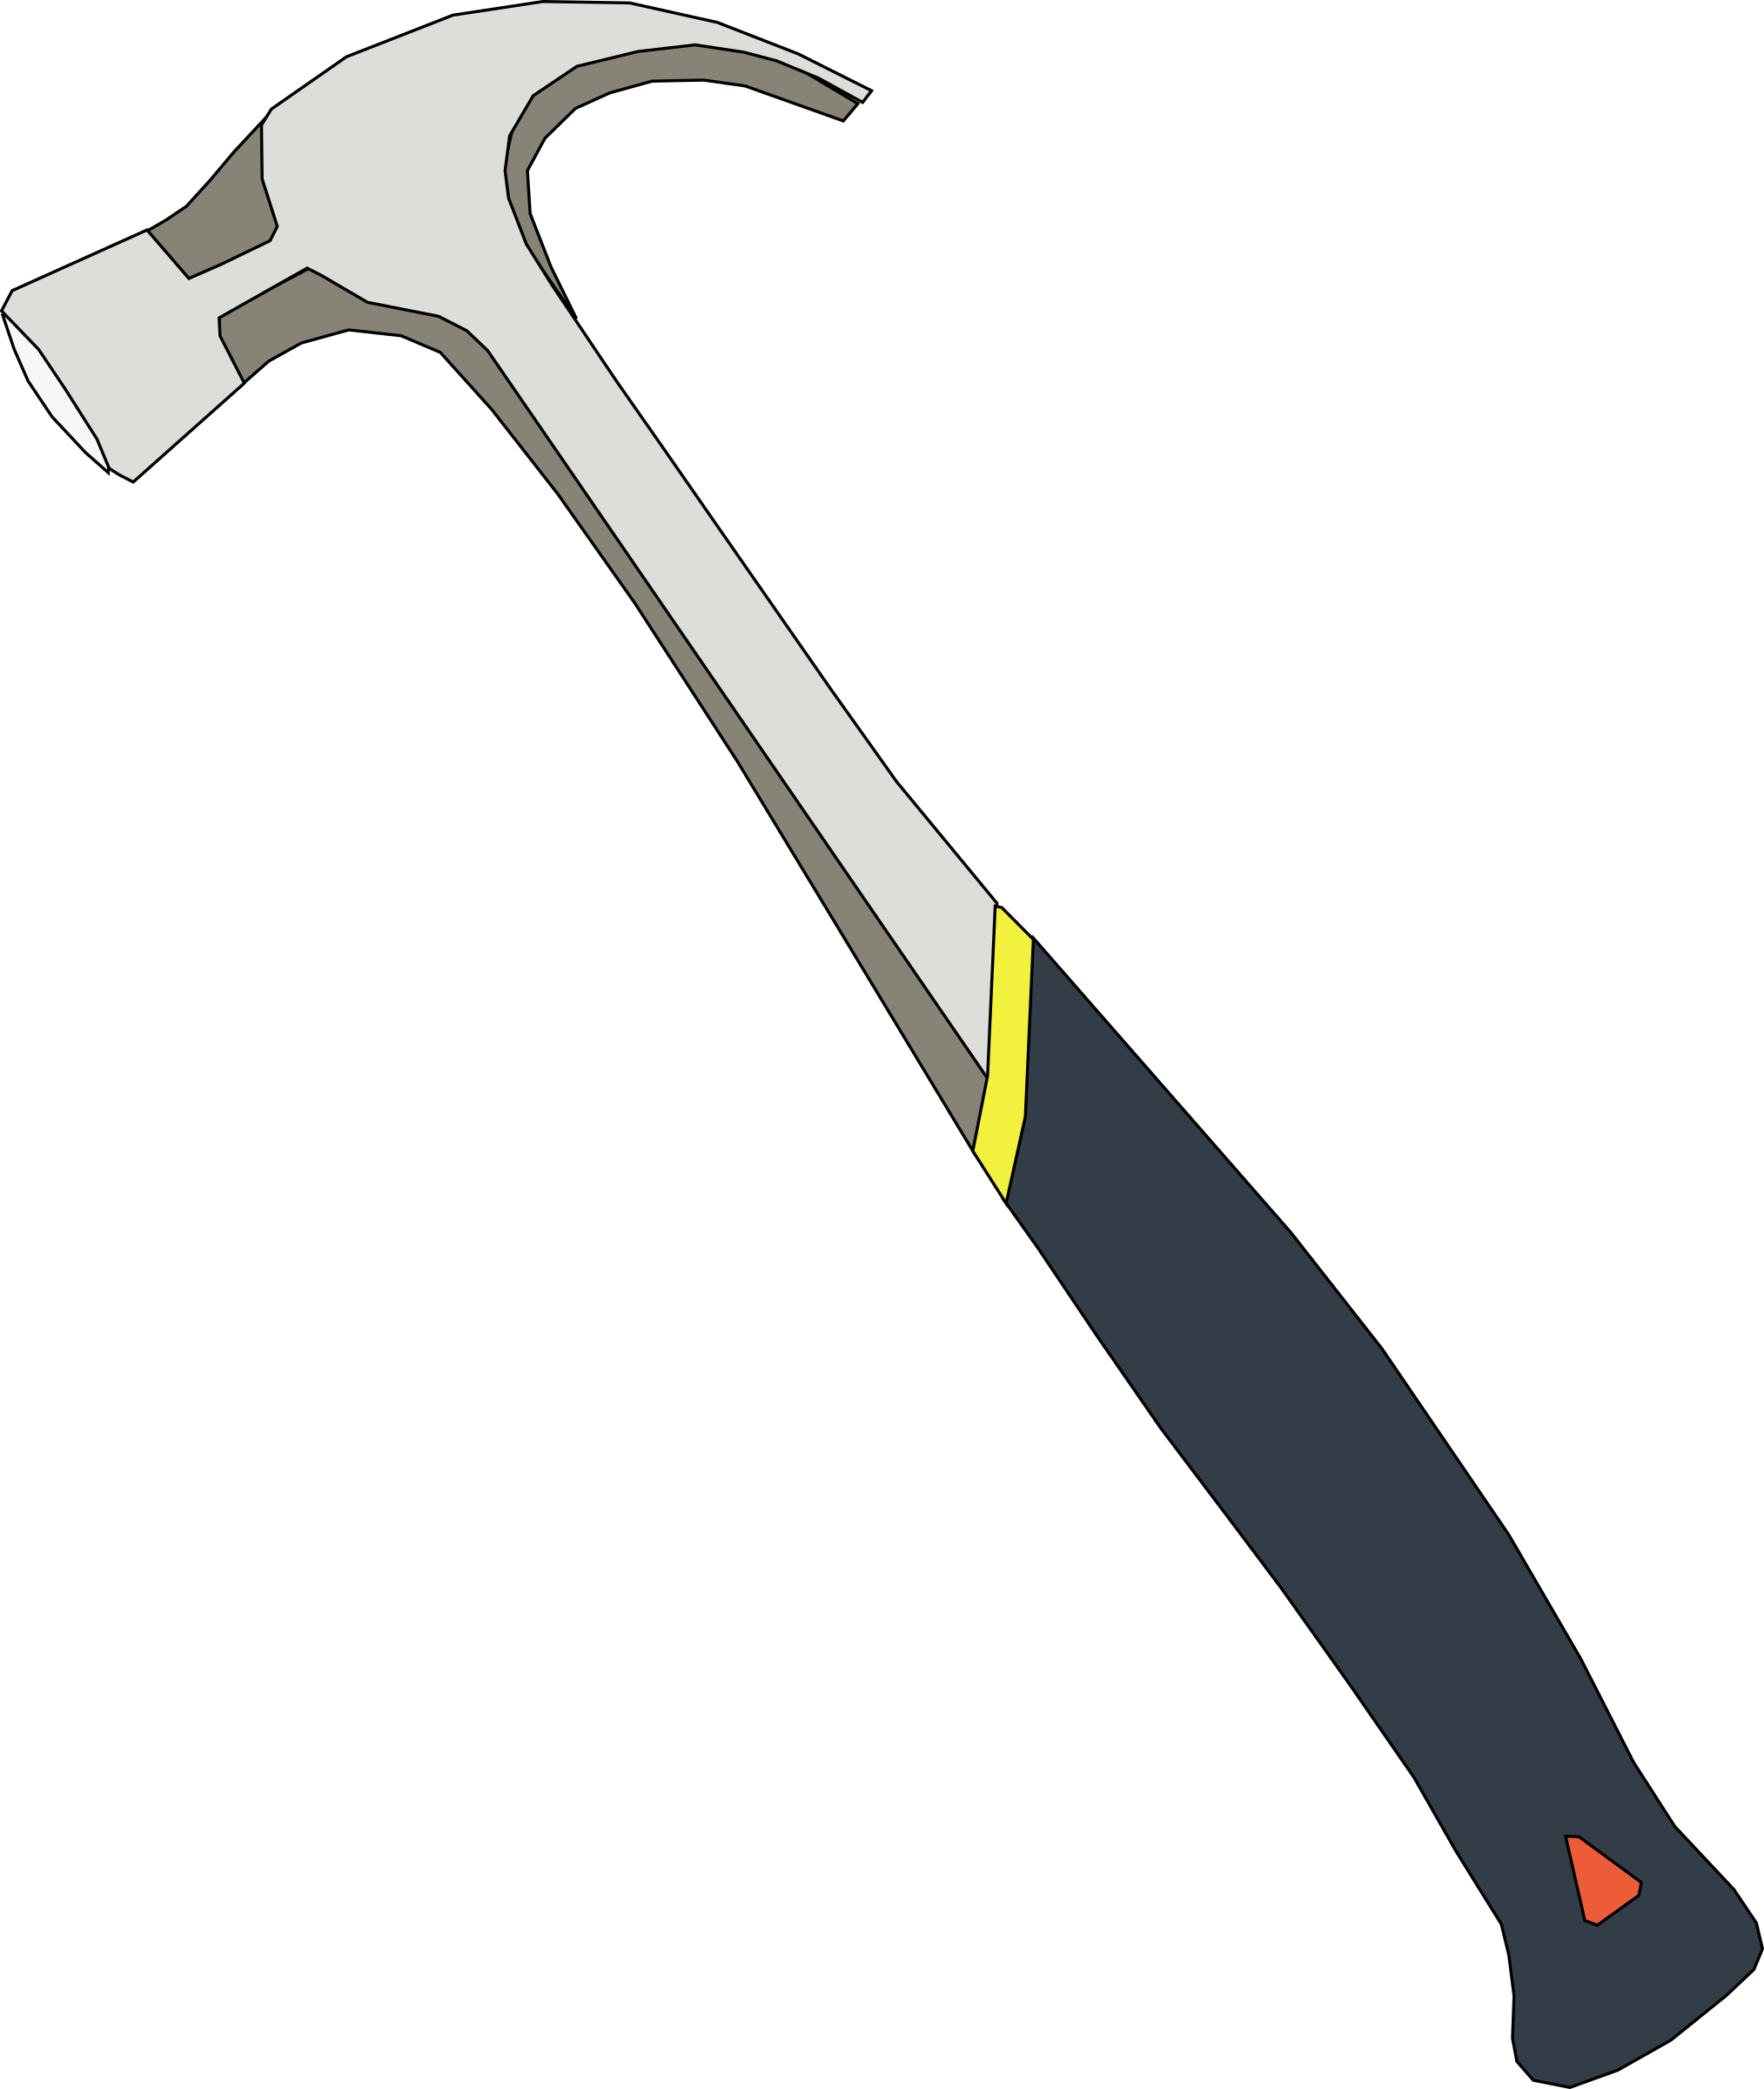 Hammer .png. Icons png free and